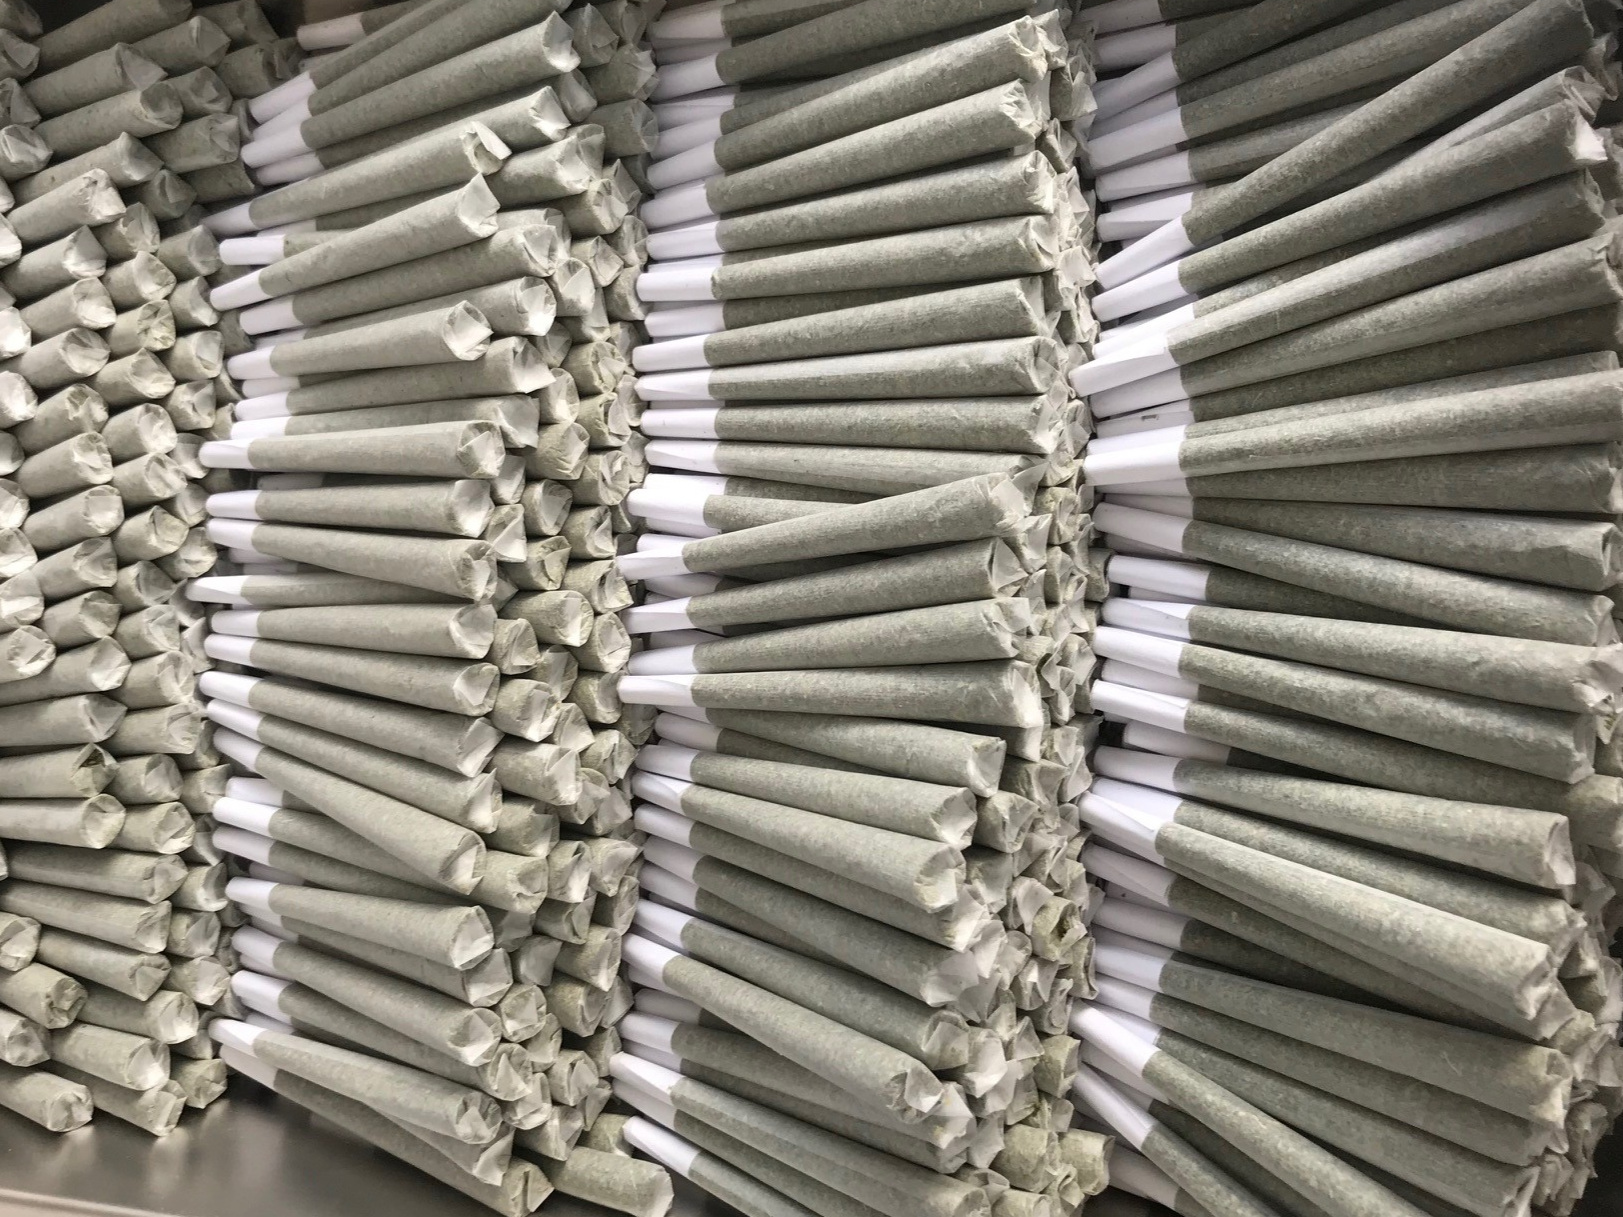 Hemp Pre Rolls - Our Pre Rolls are handcrafted to the highest standards using super thin Futurola® Rolling Papers, with Filter Tips (no logo).Available in King Size (109mm / 1 gram) and Regular Size (84mm / 1/2 gram), white paper cones.